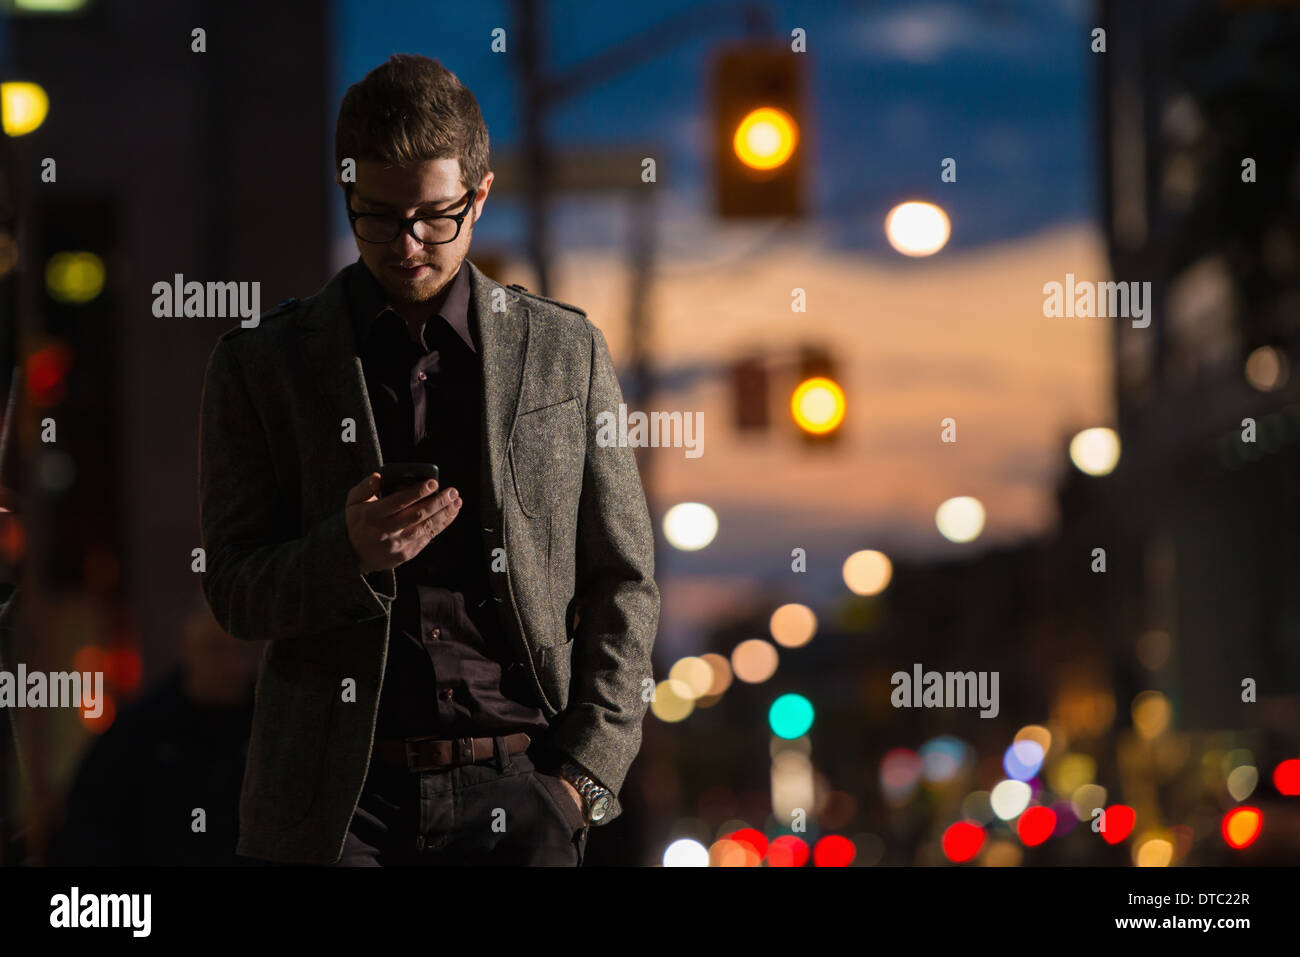 Young man strolling down street looking at mobile phone, Toronto, Ontario, Canada - Stock Image